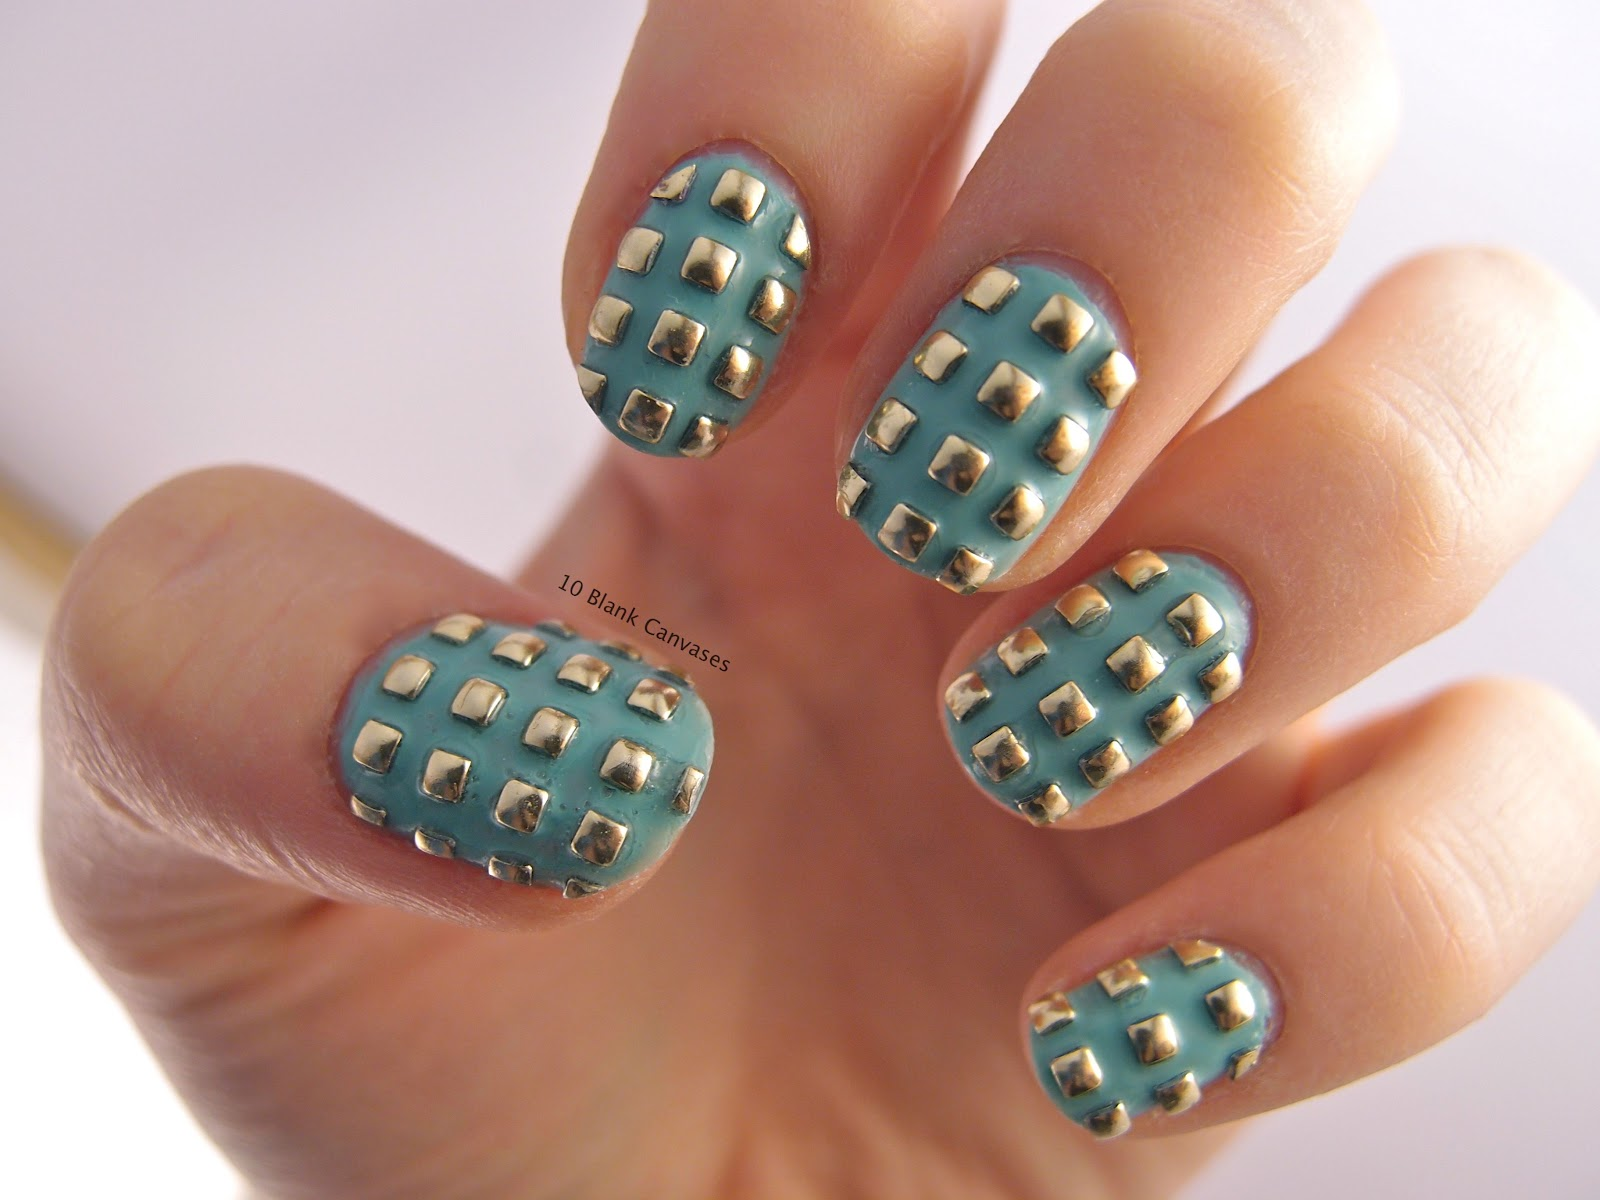 Gorgeous Nails With Studs Look! – CT Esthetic